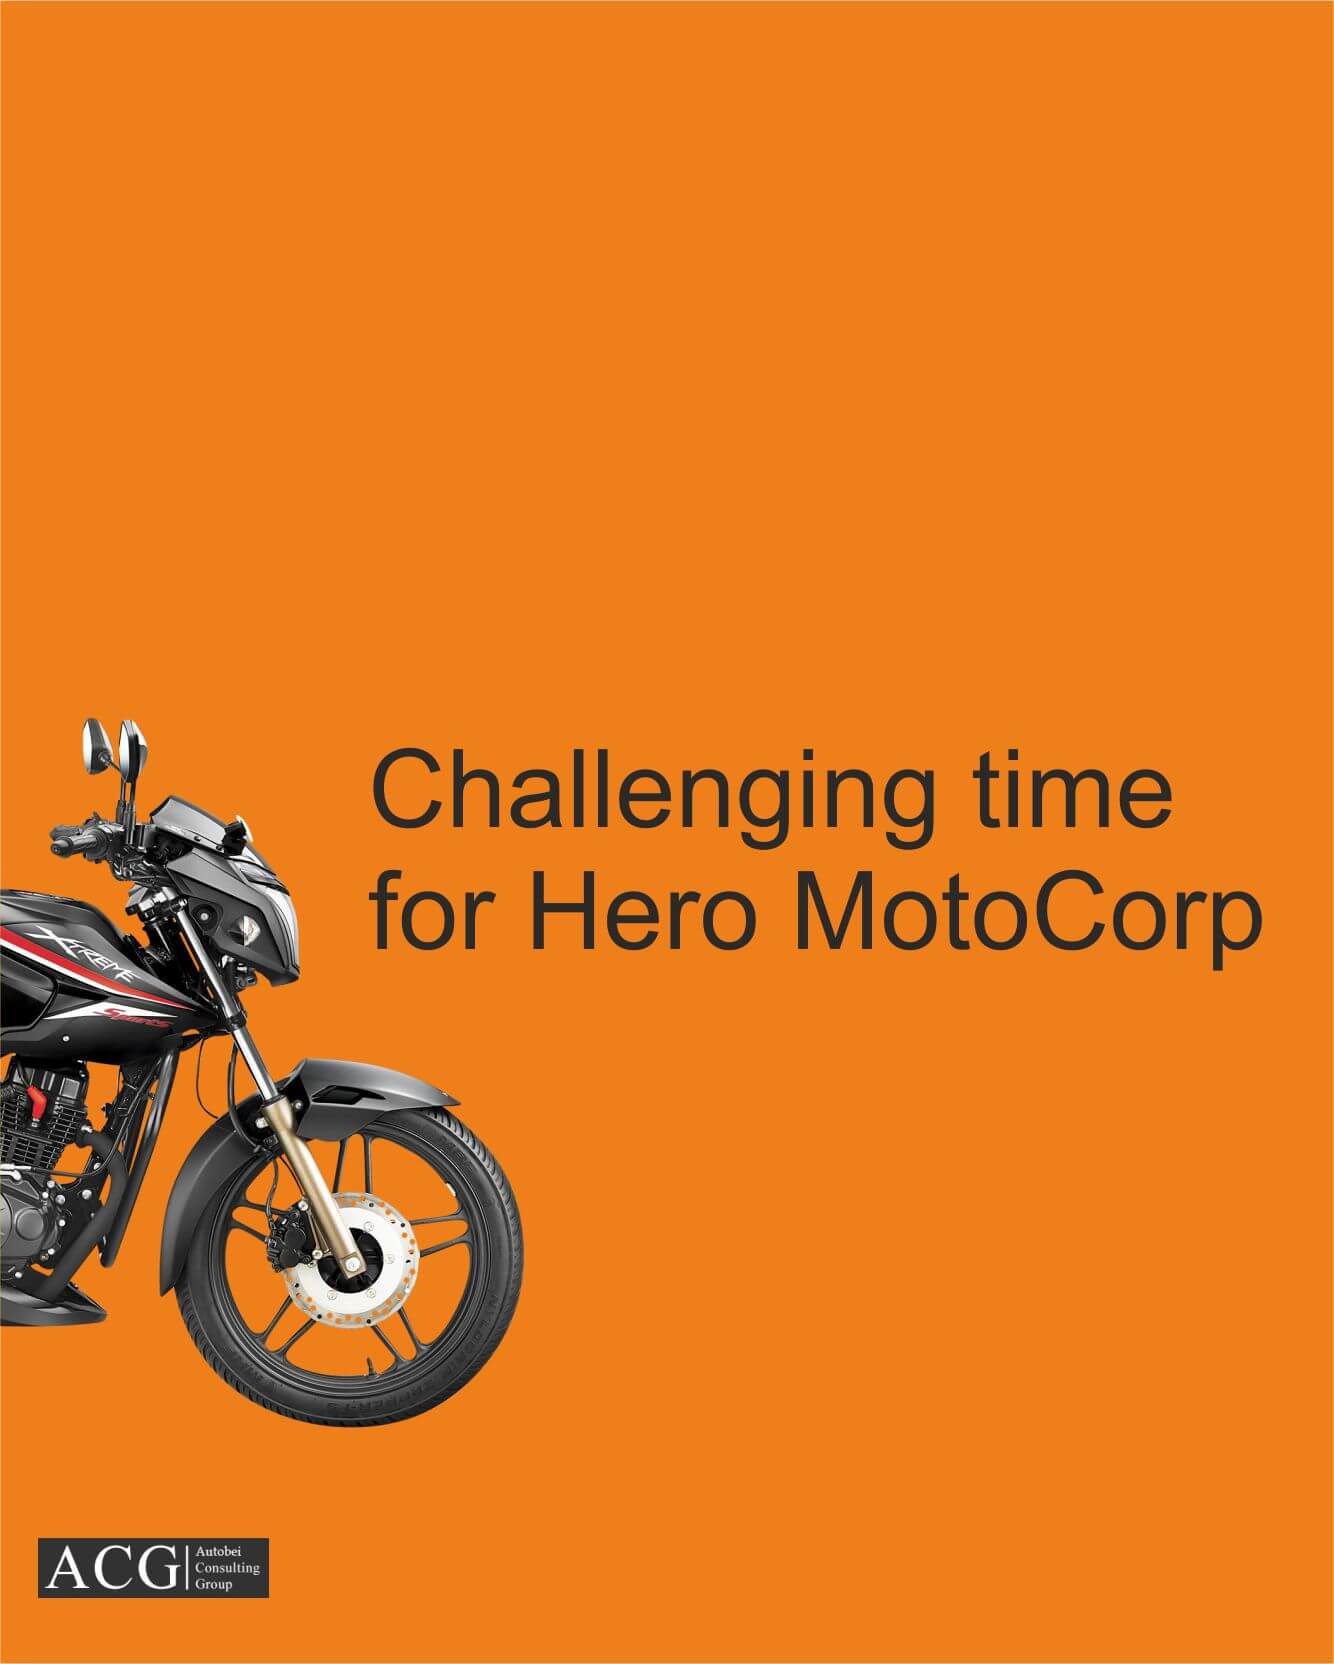 Challenging time for Hero MotoCorp